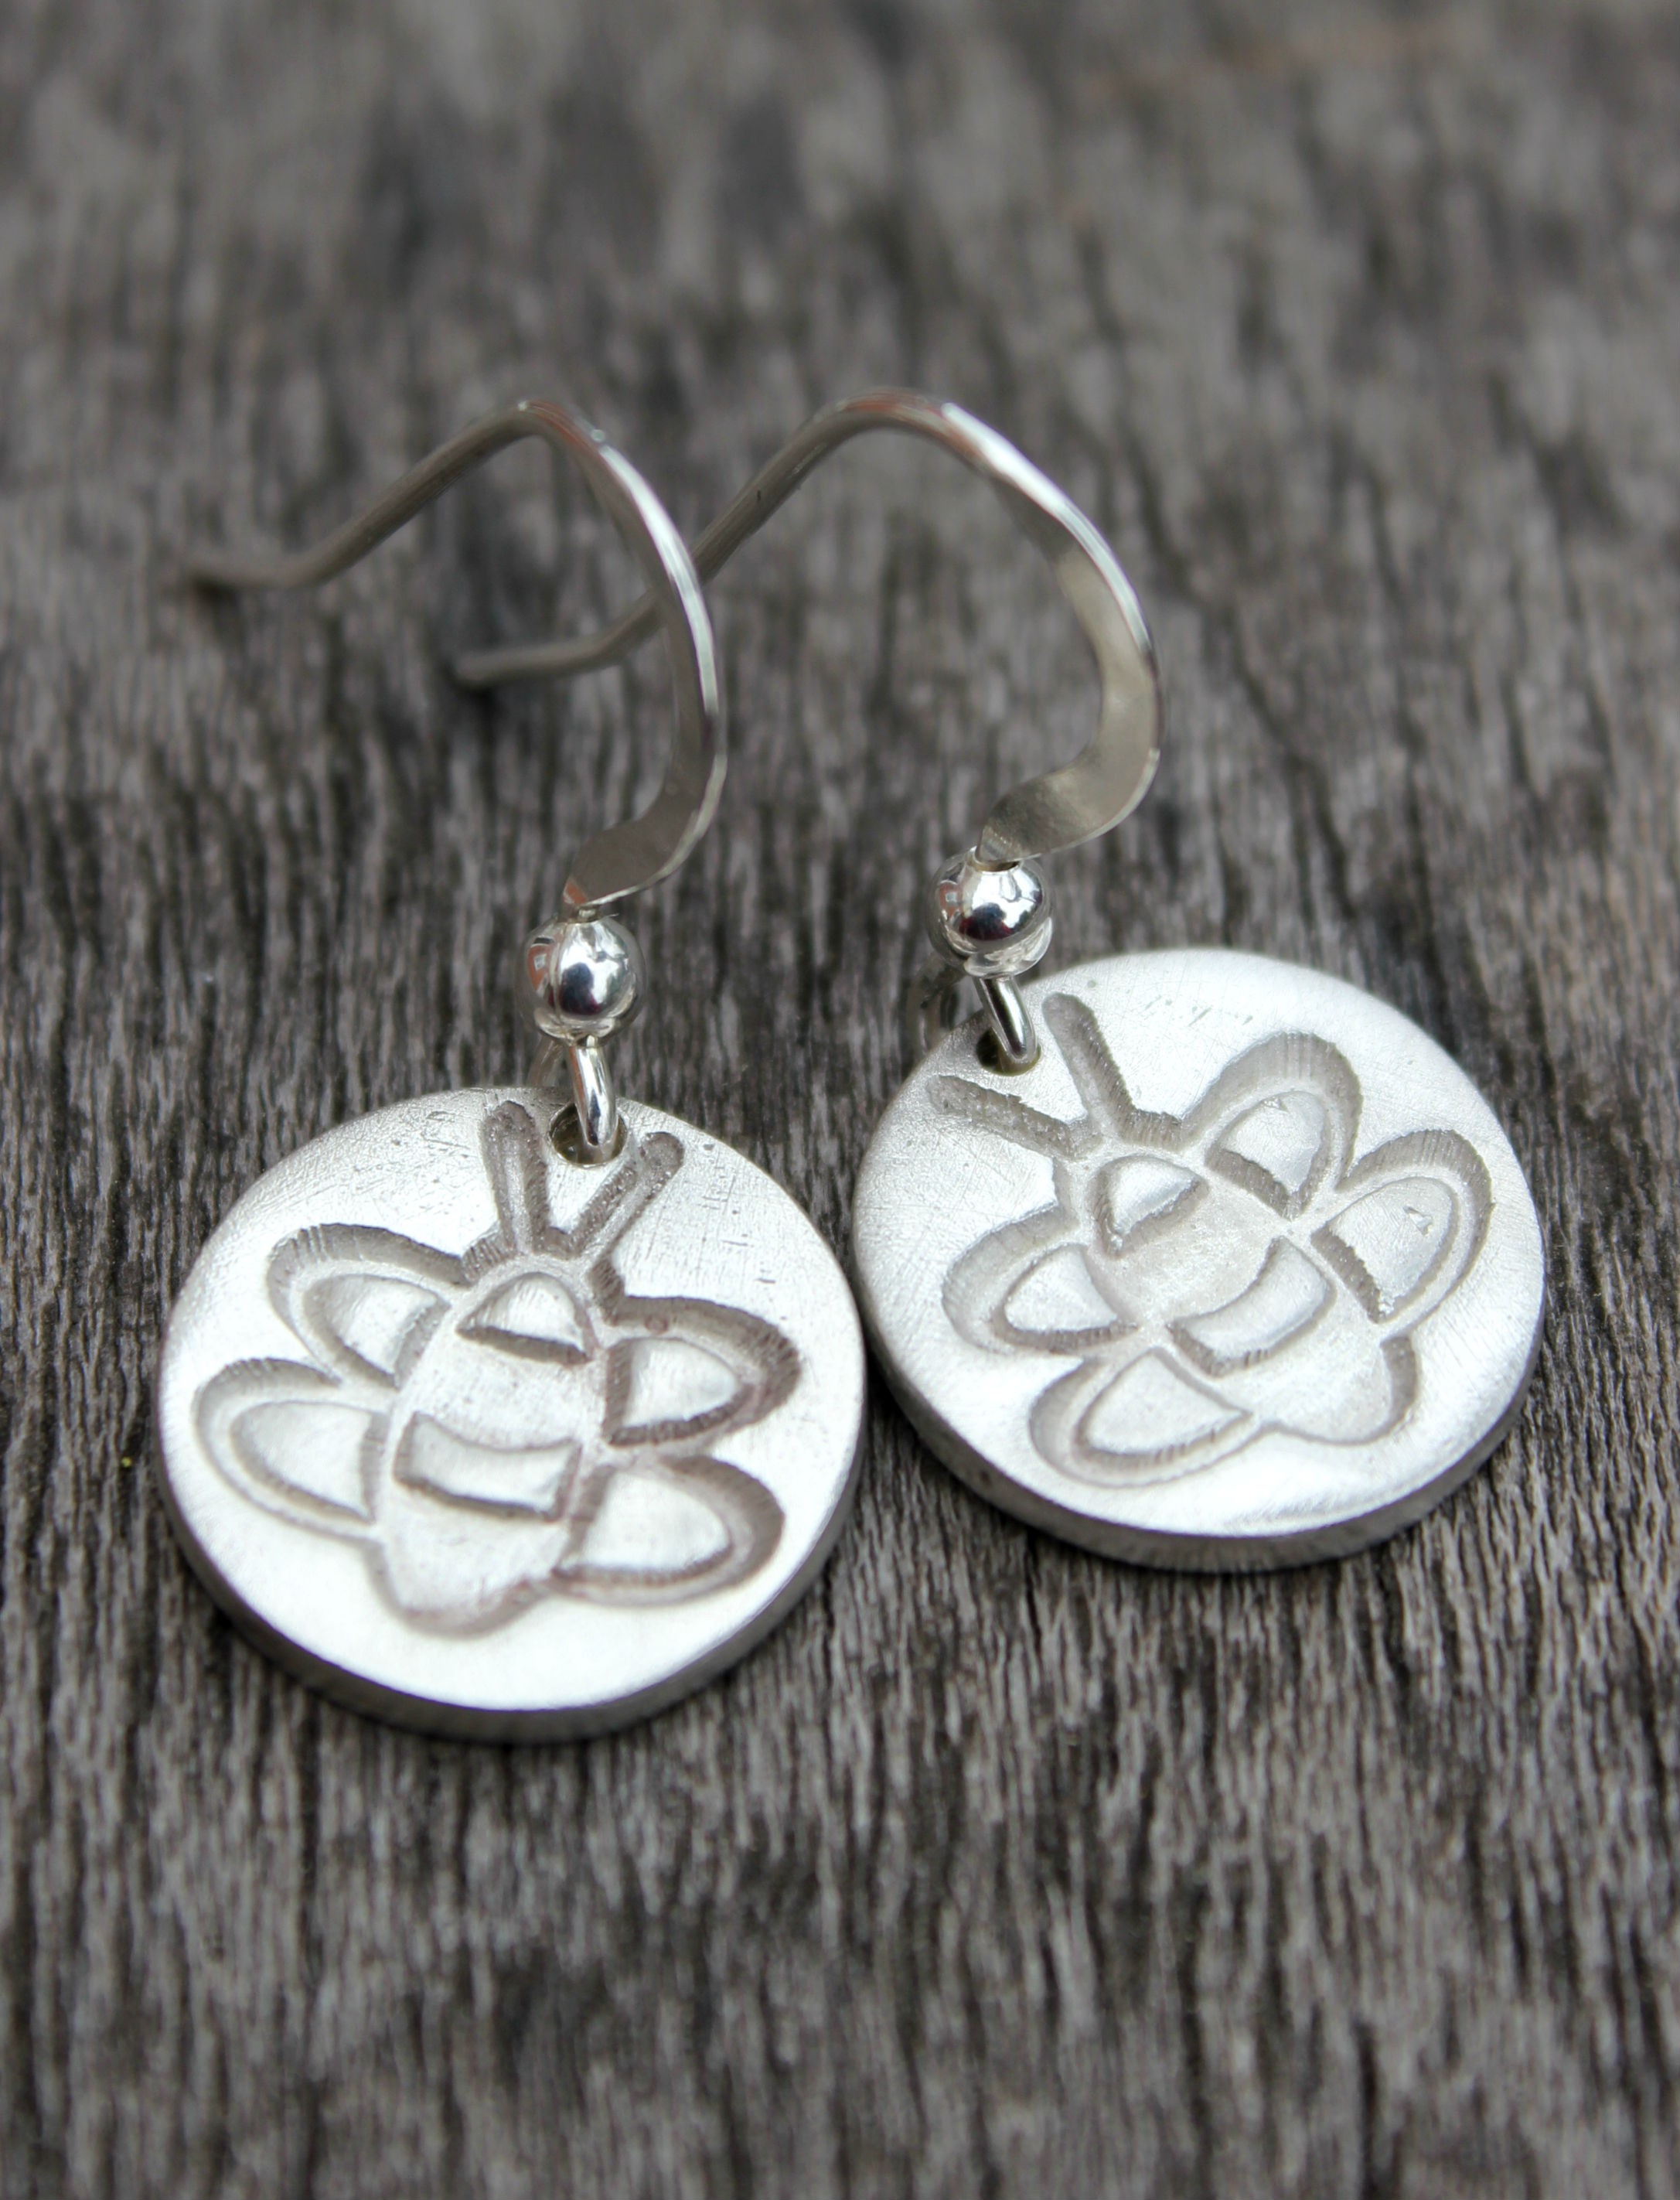 Silver bumblebee earrings, silver bee earrings, silver honeybee earrings by little silver hedgehog